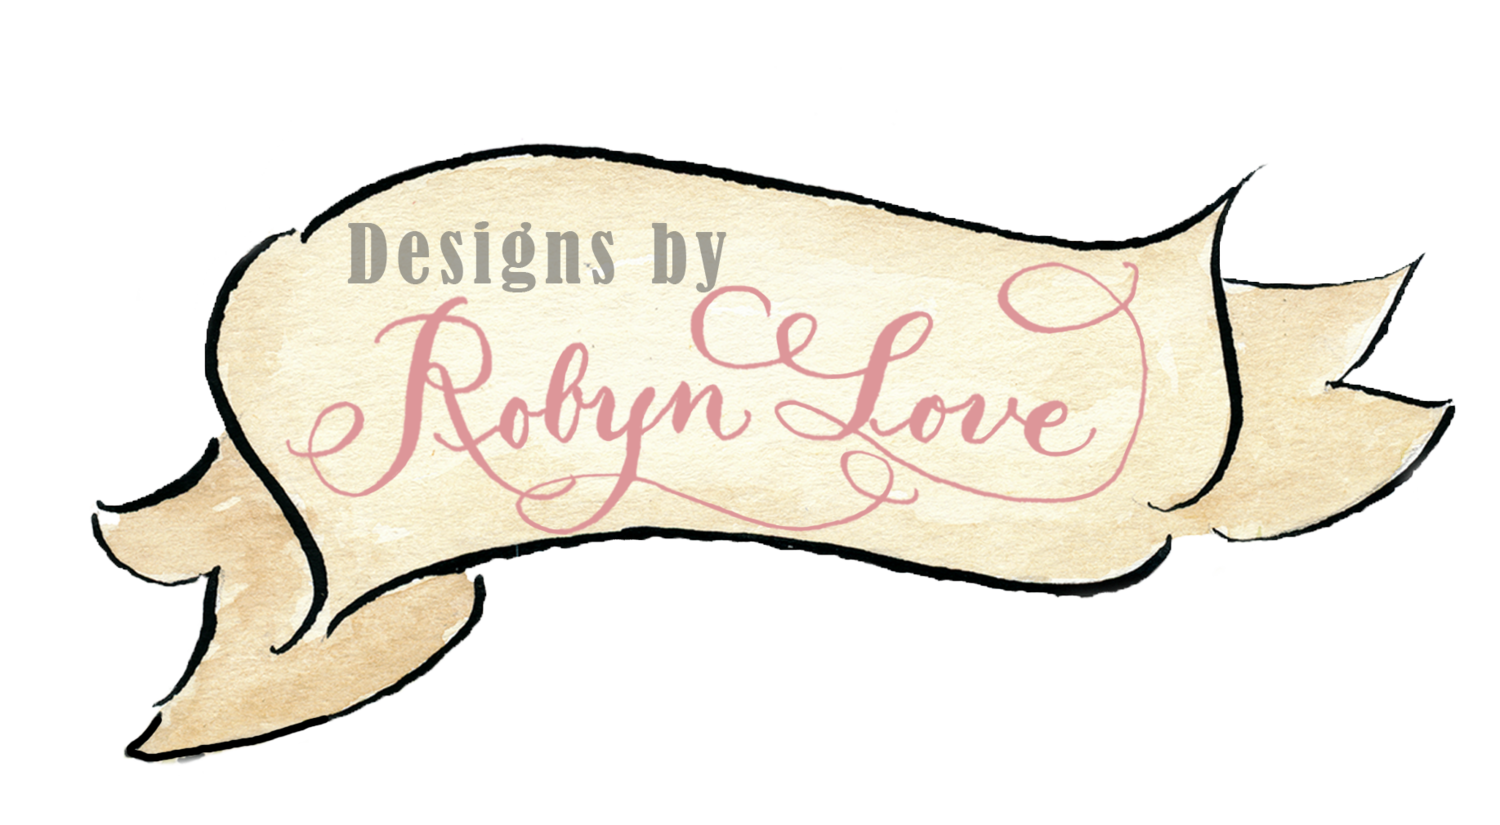 Designs by Robyn Love